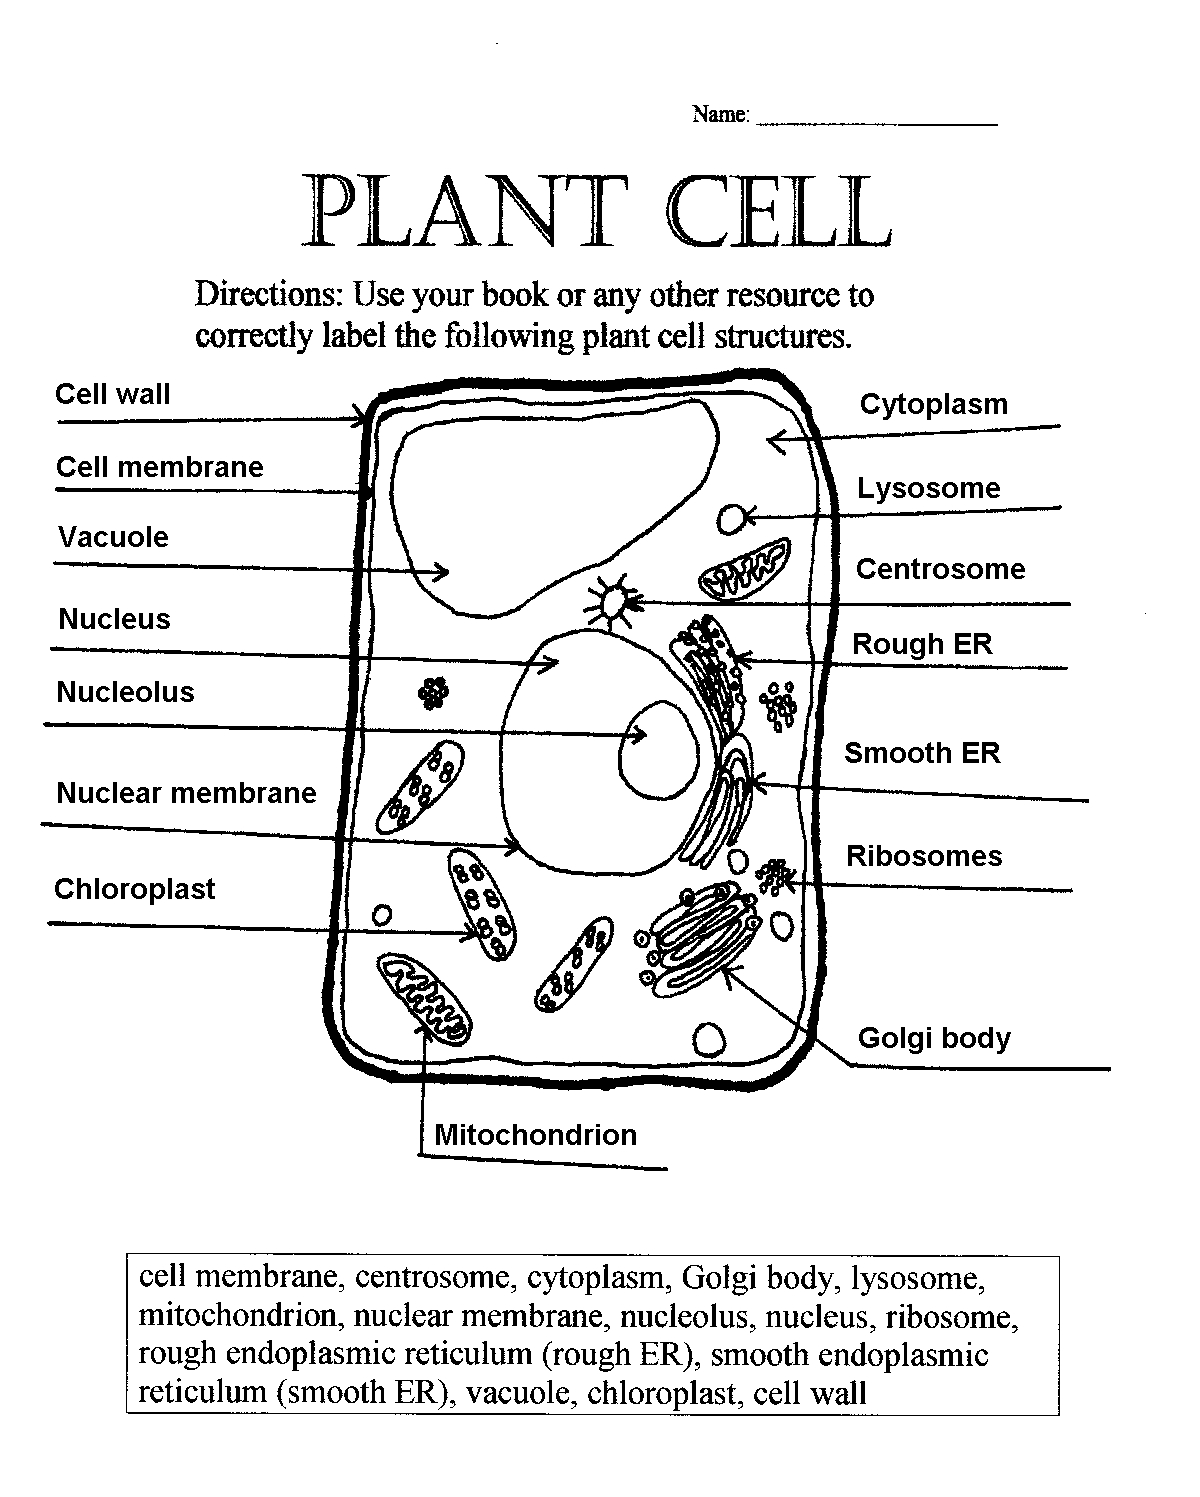 Pinjennifer Kodua On Science | Plant Cell Diagram, Science Cells - Free Printable Cell Worksheets